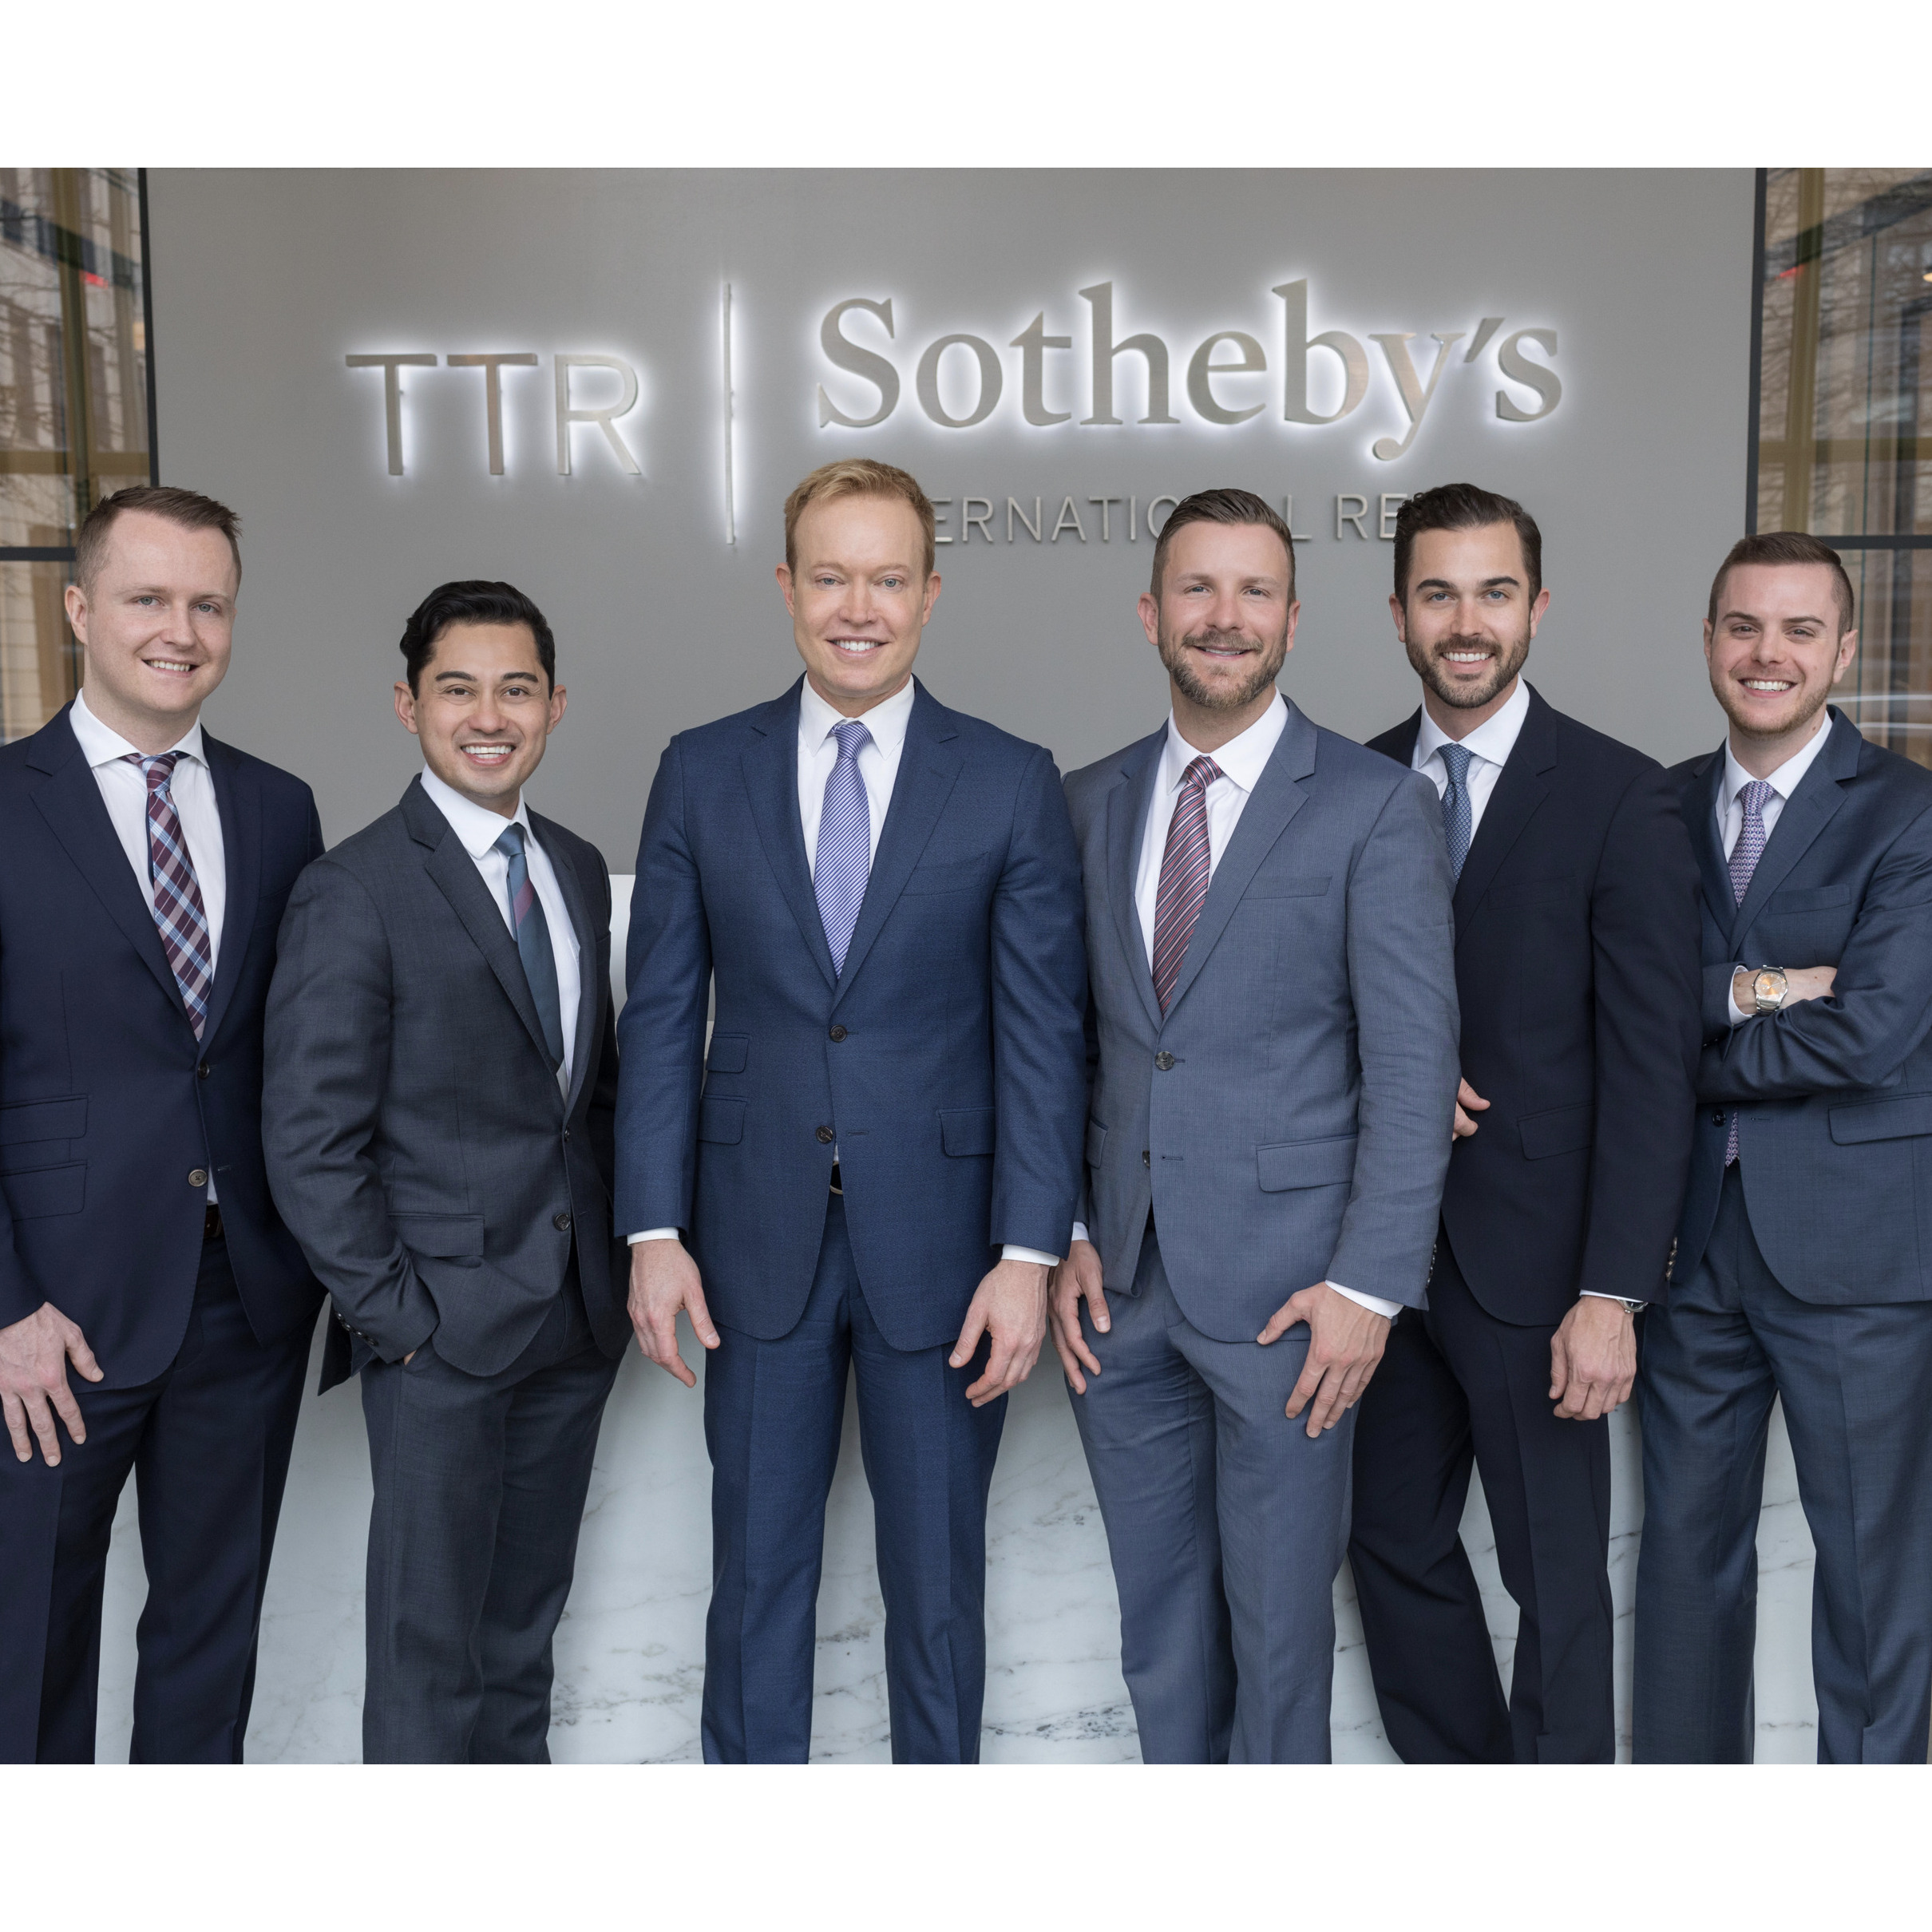 Jeff & Joseph GroupTTR Sotheby's International Realty